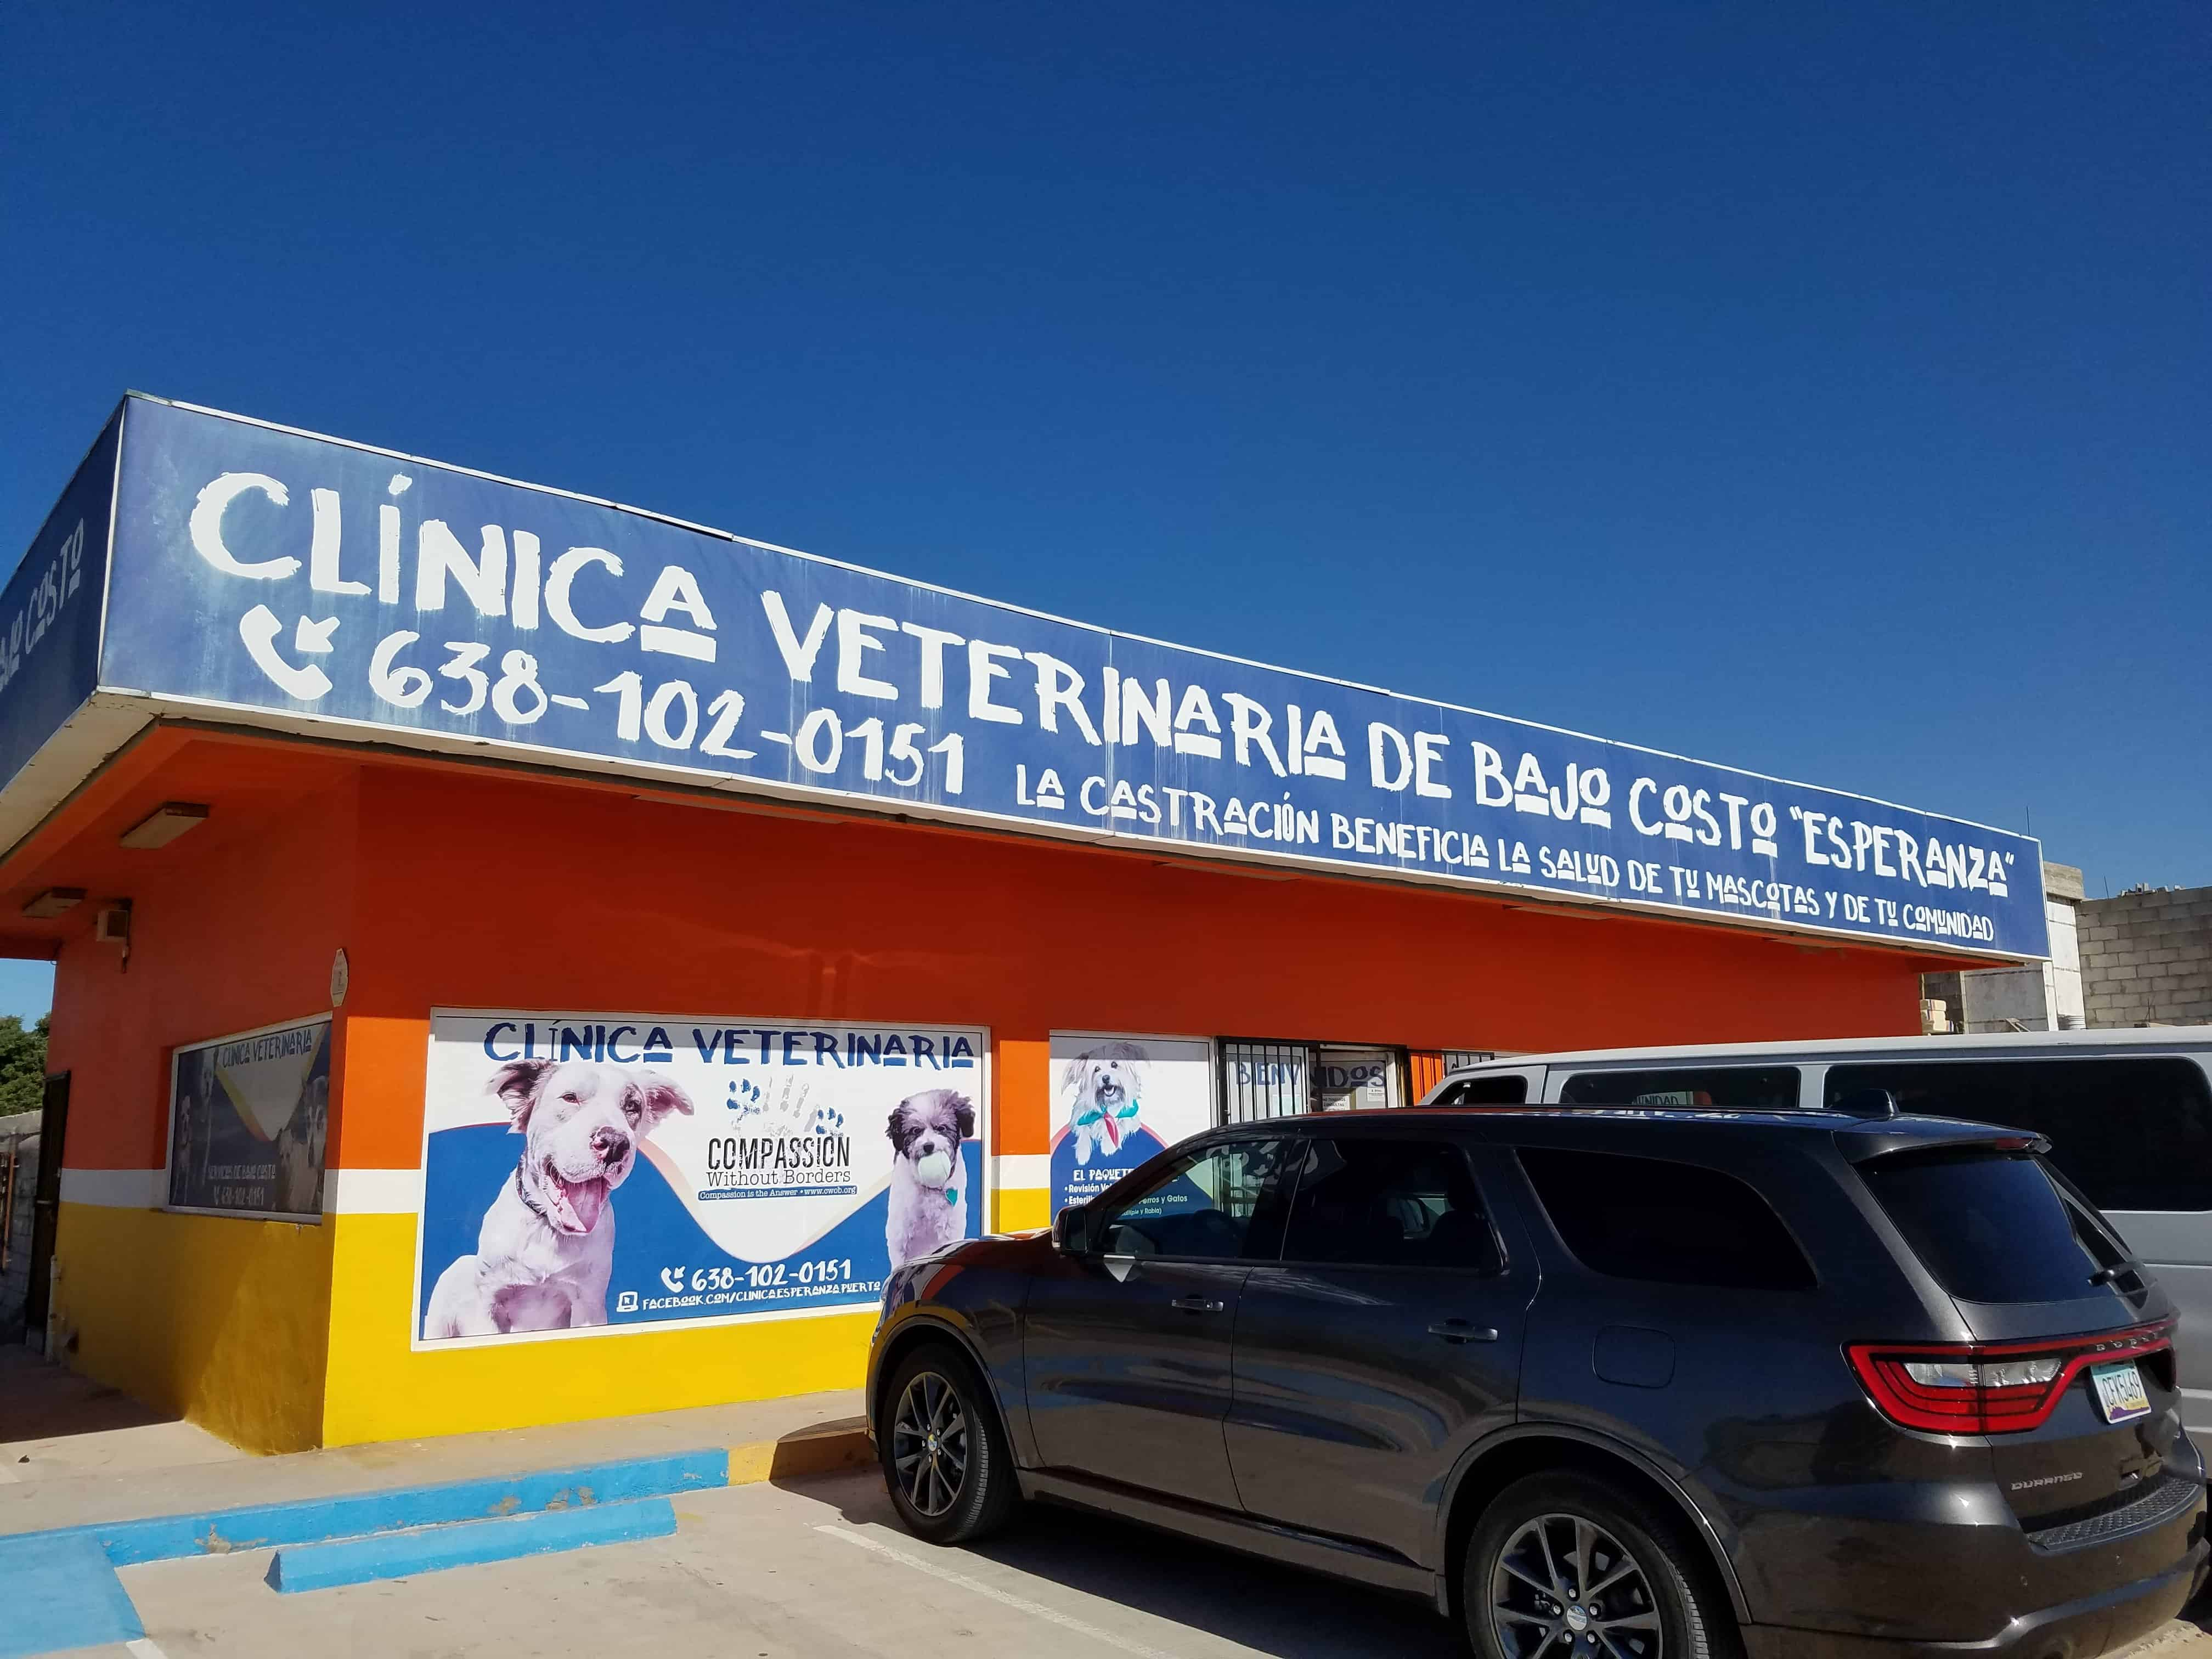 Clinica Veterinaria De Bajo Costo